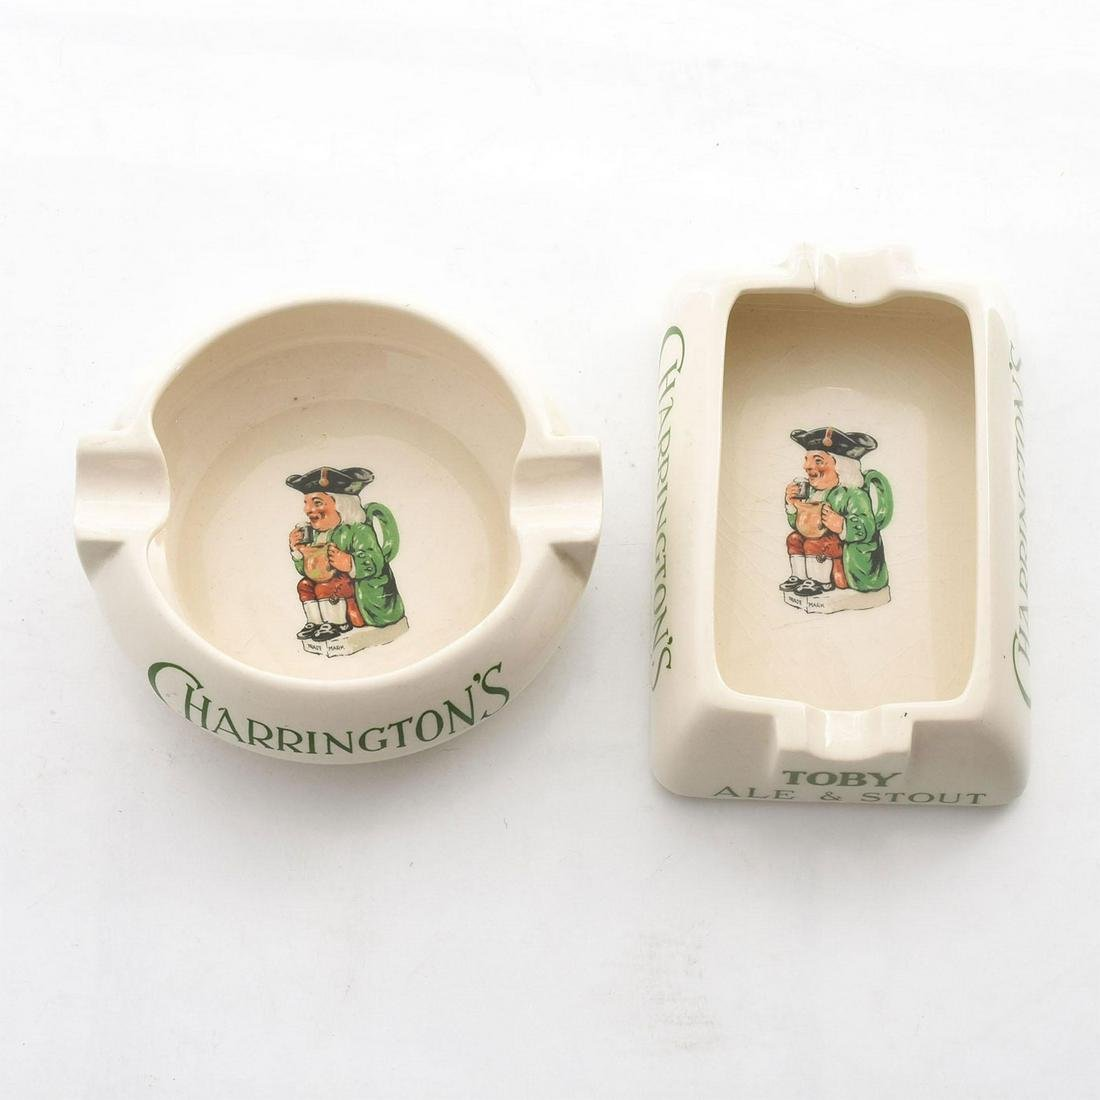 2 ROYAL DOULTON CHARRINGTON'S ADVERTISING ASHTRAYS